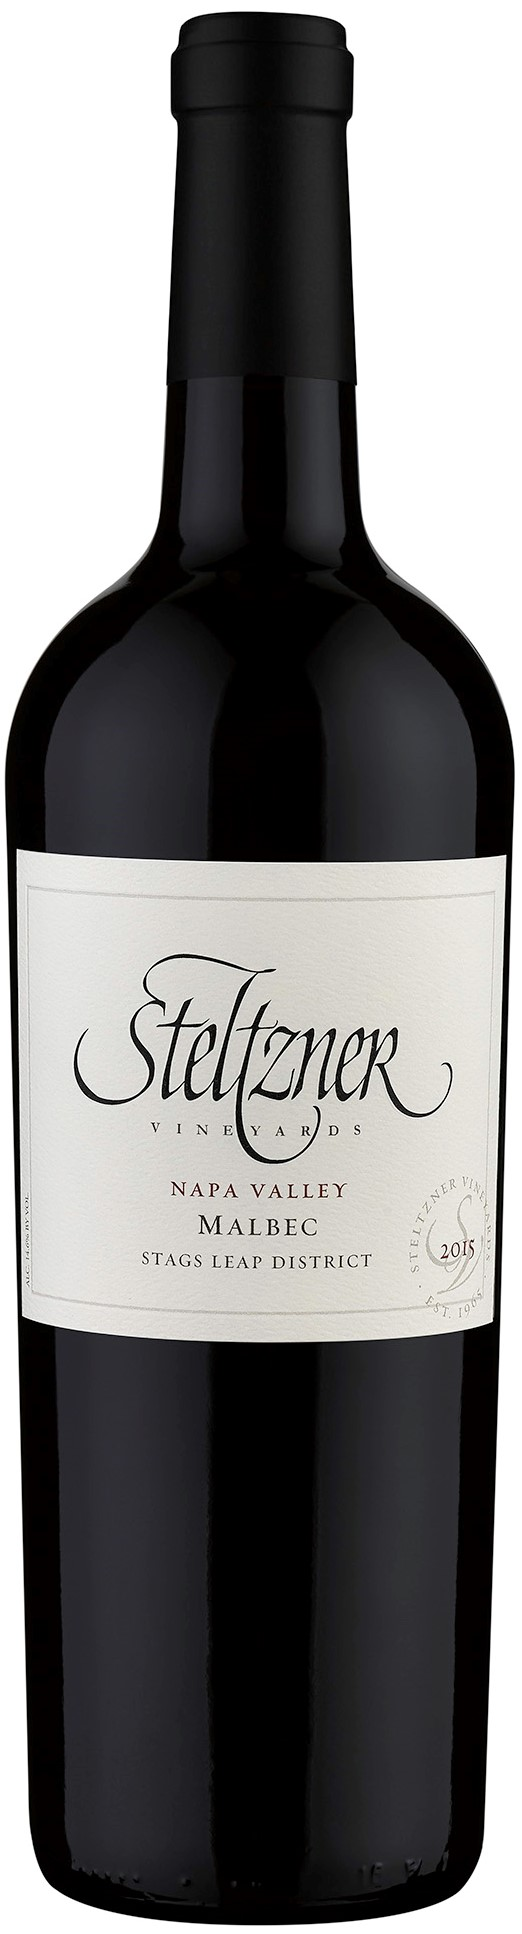 Product Image for 2015 Steltzner Vineyards Malbec, SLD